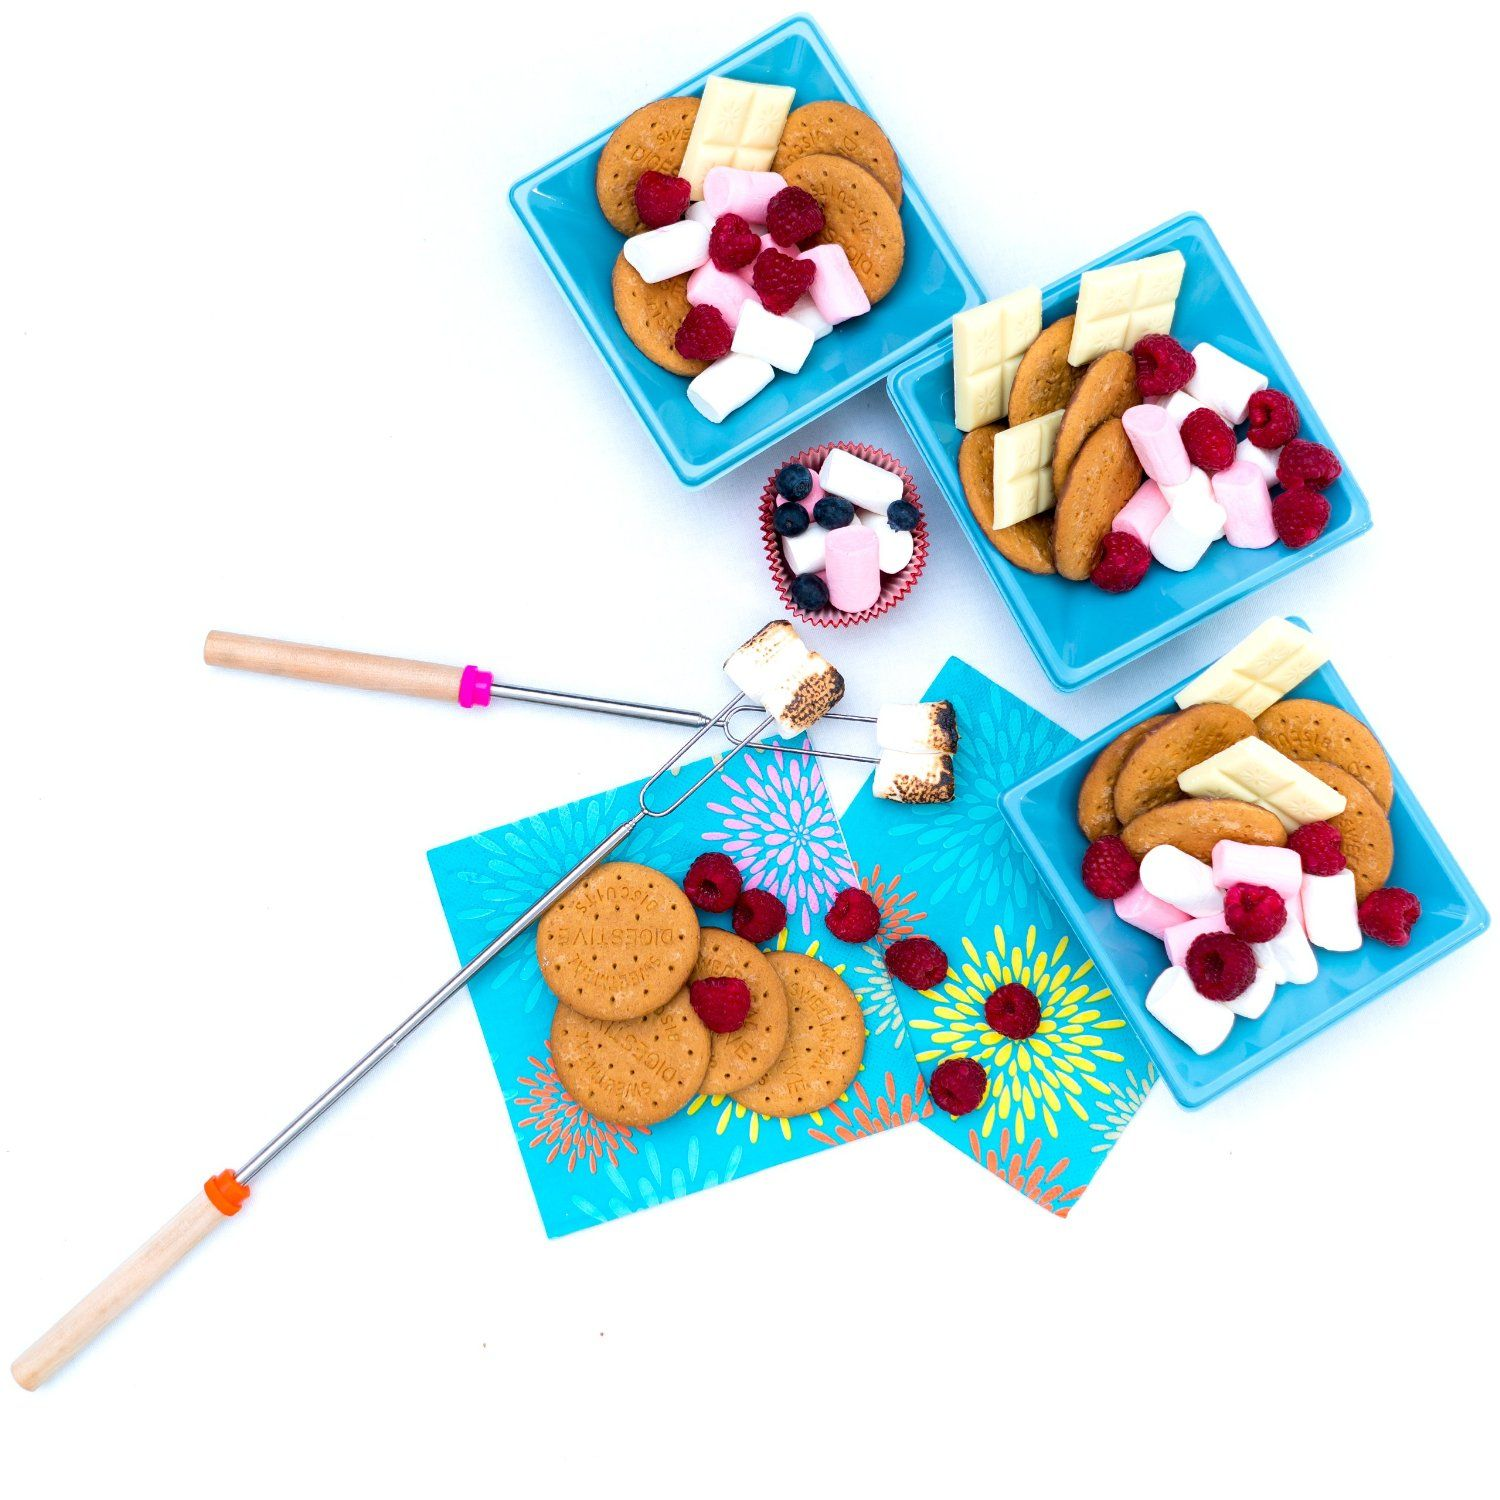 Marshmallow Roasting Sticks For BBQ Camping Bonfire Campfire Cooking Telescoping Hotdog